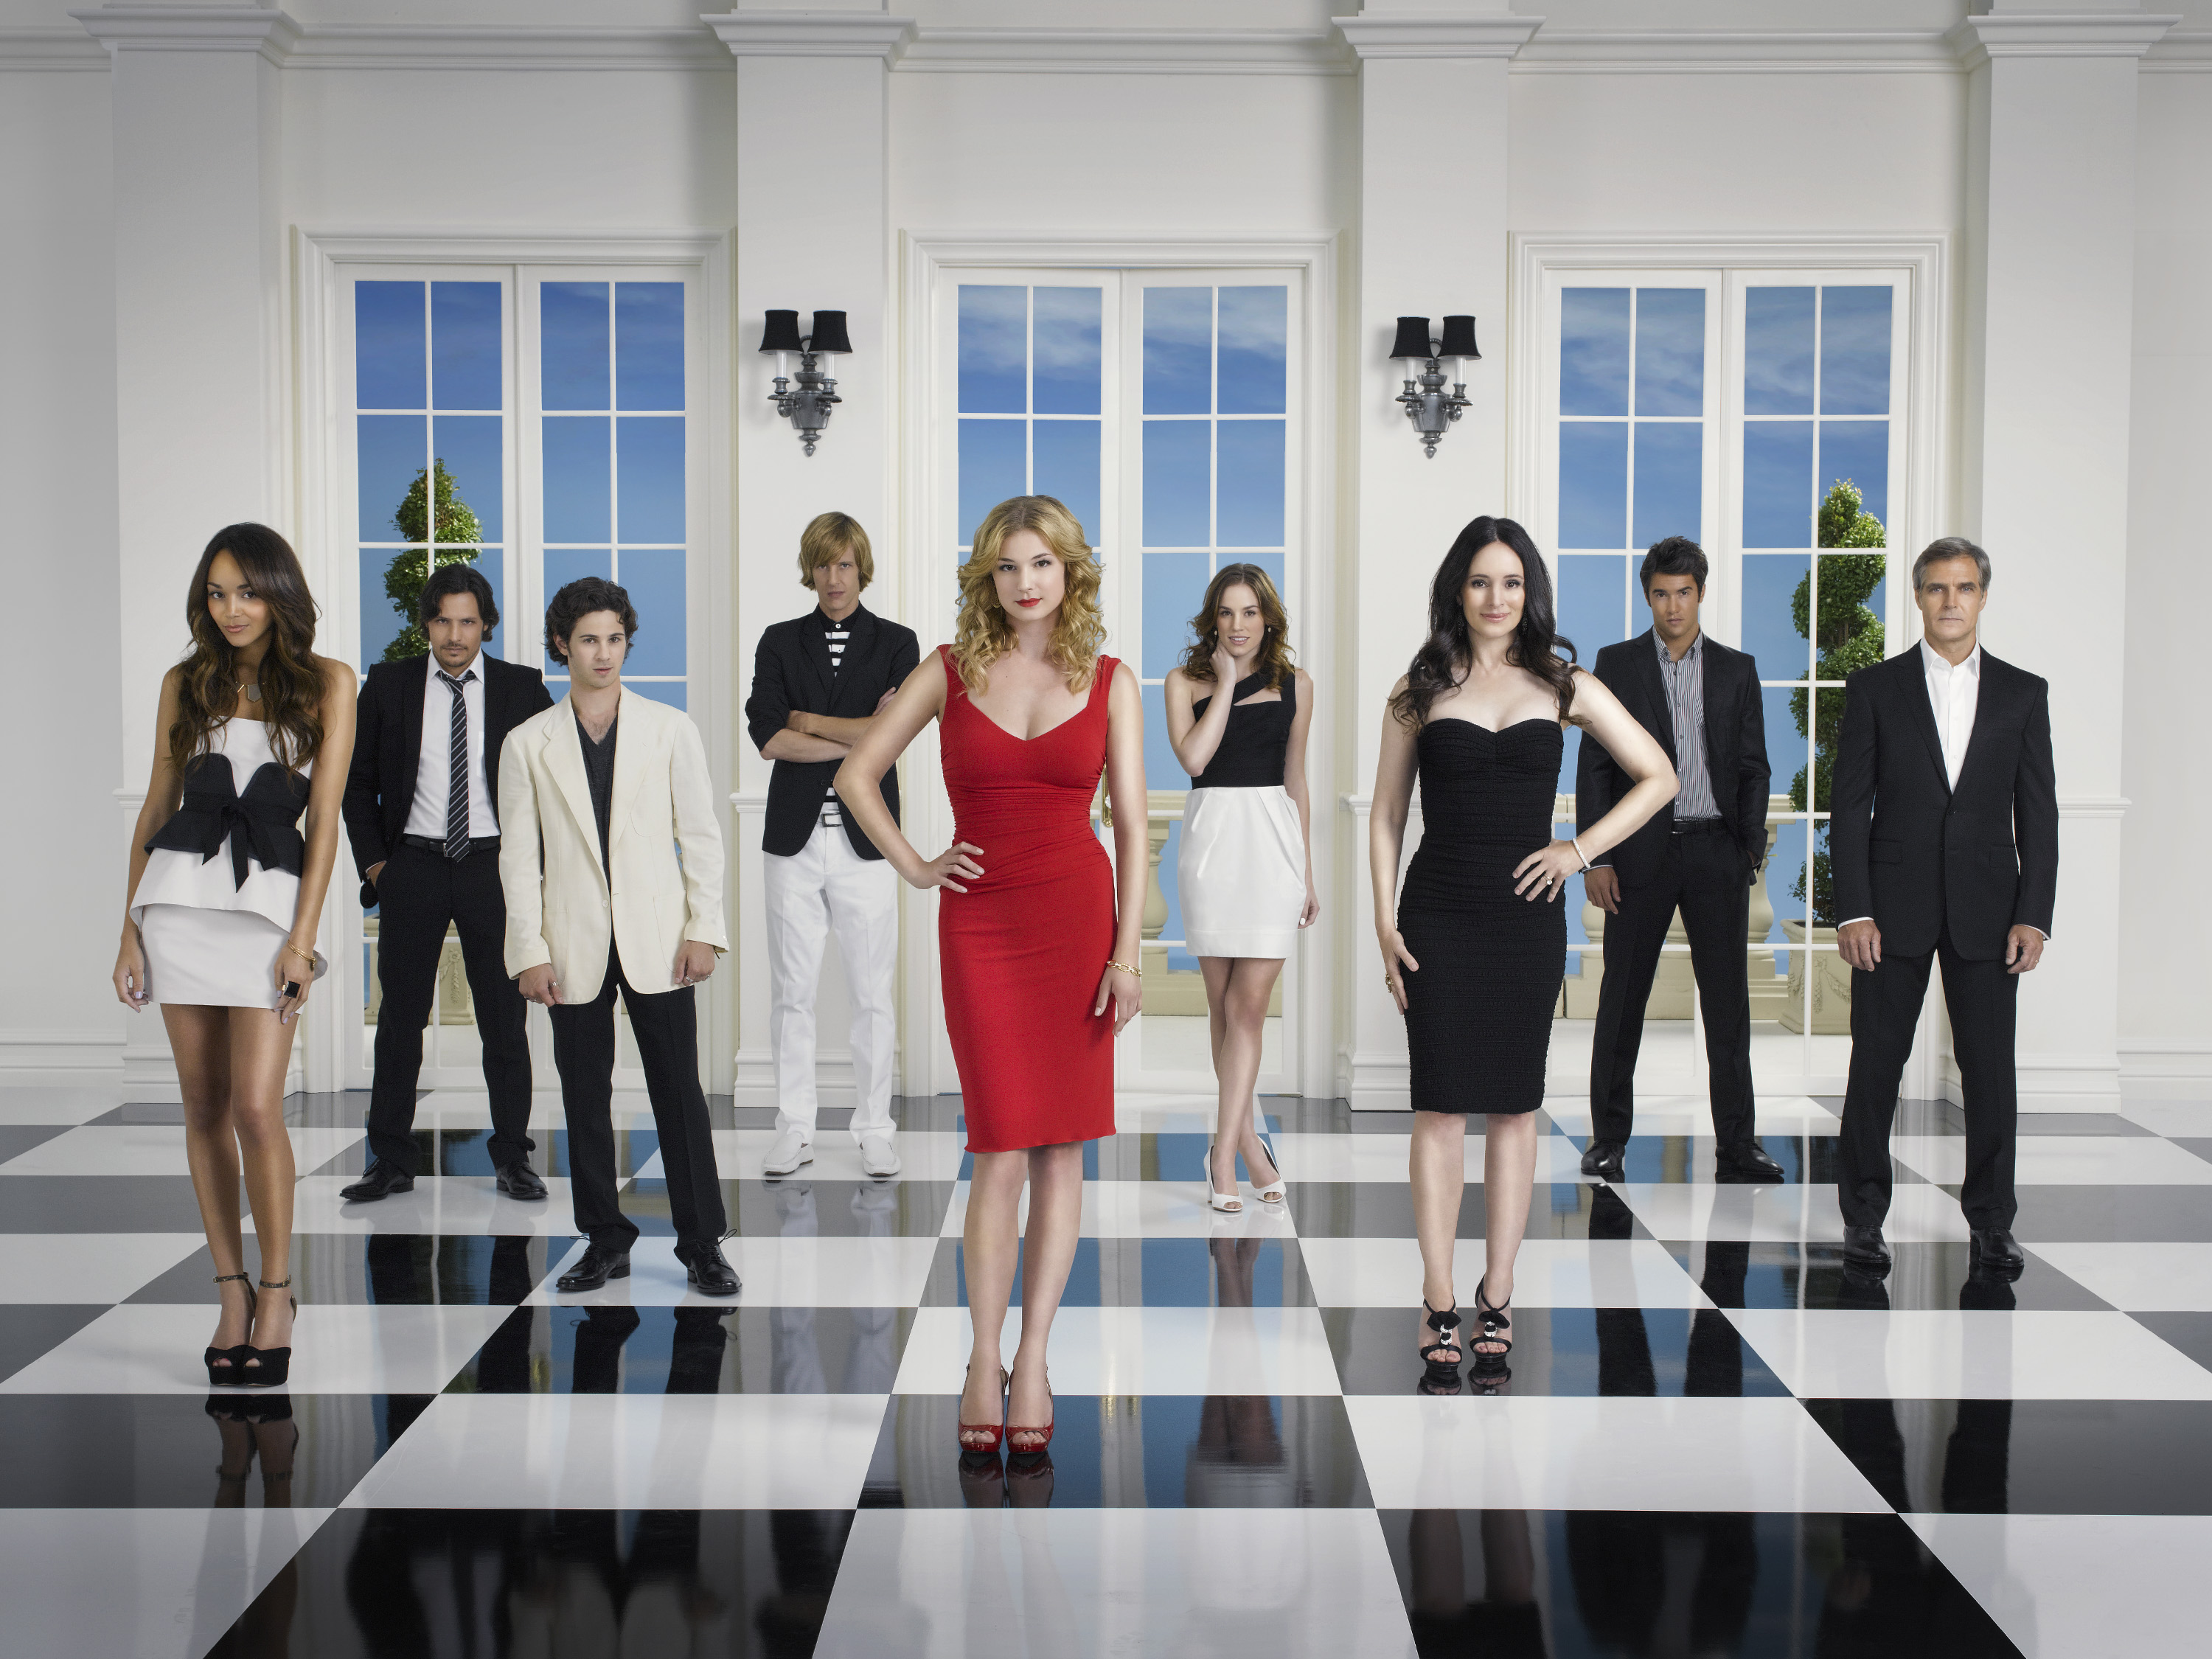 Revenge cancellata da ABC: no alla quinta stagione, sì allo 'spin-off' The Kingmakers?